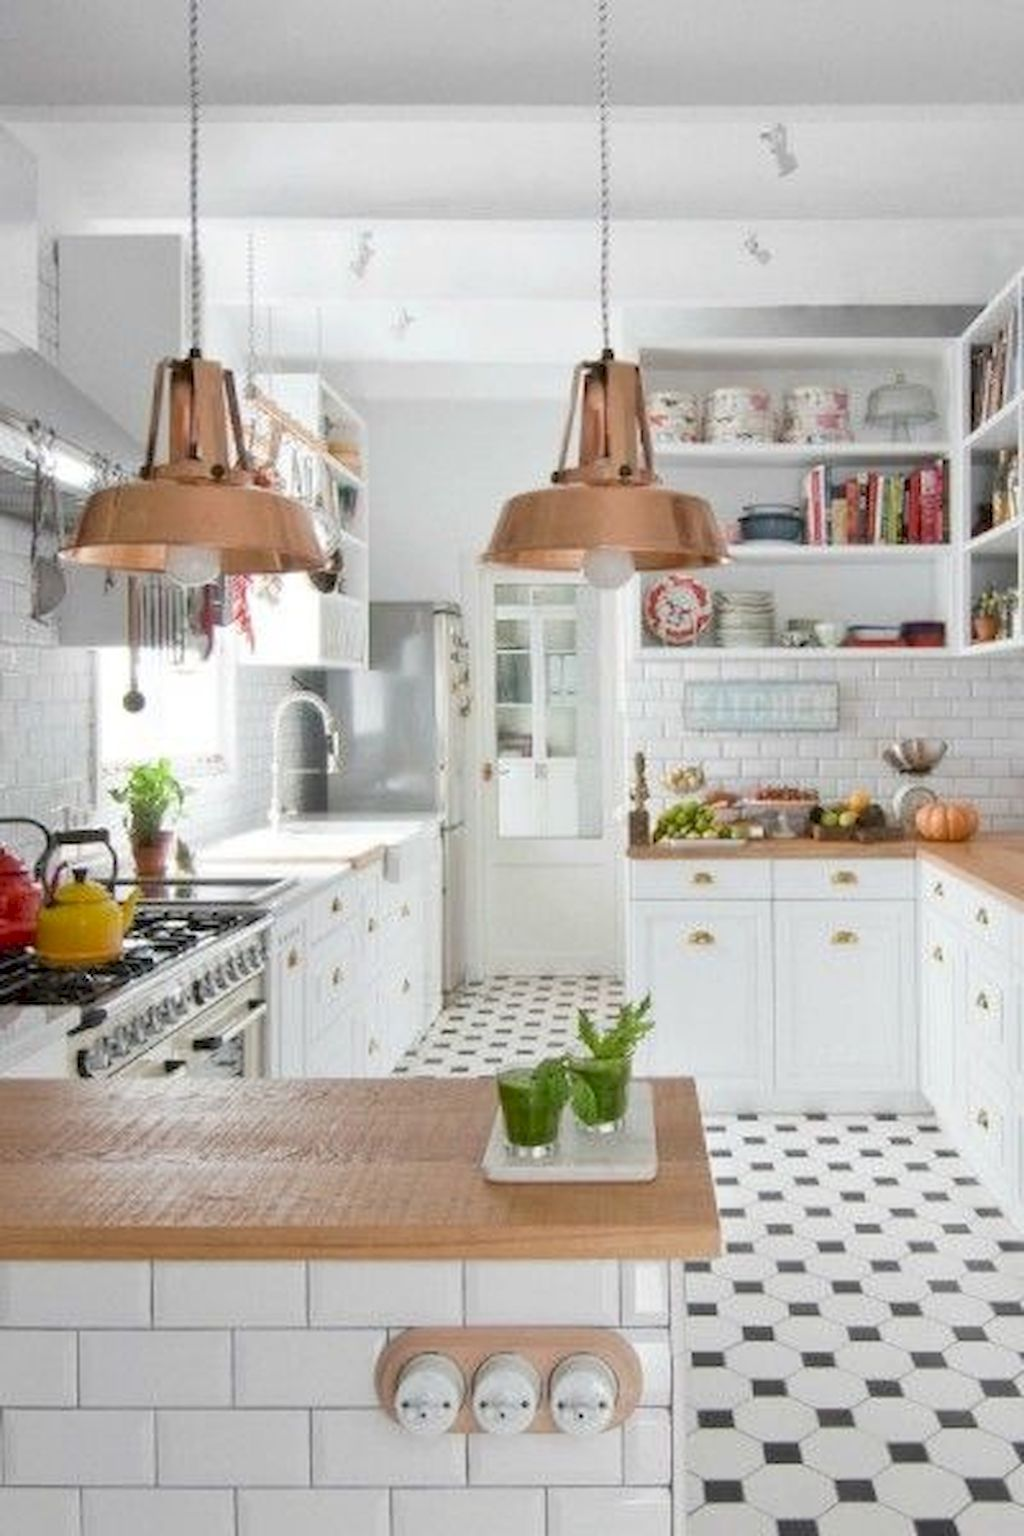 Nice 70+ Small Apartment Kitchen Ideas On A Budget https